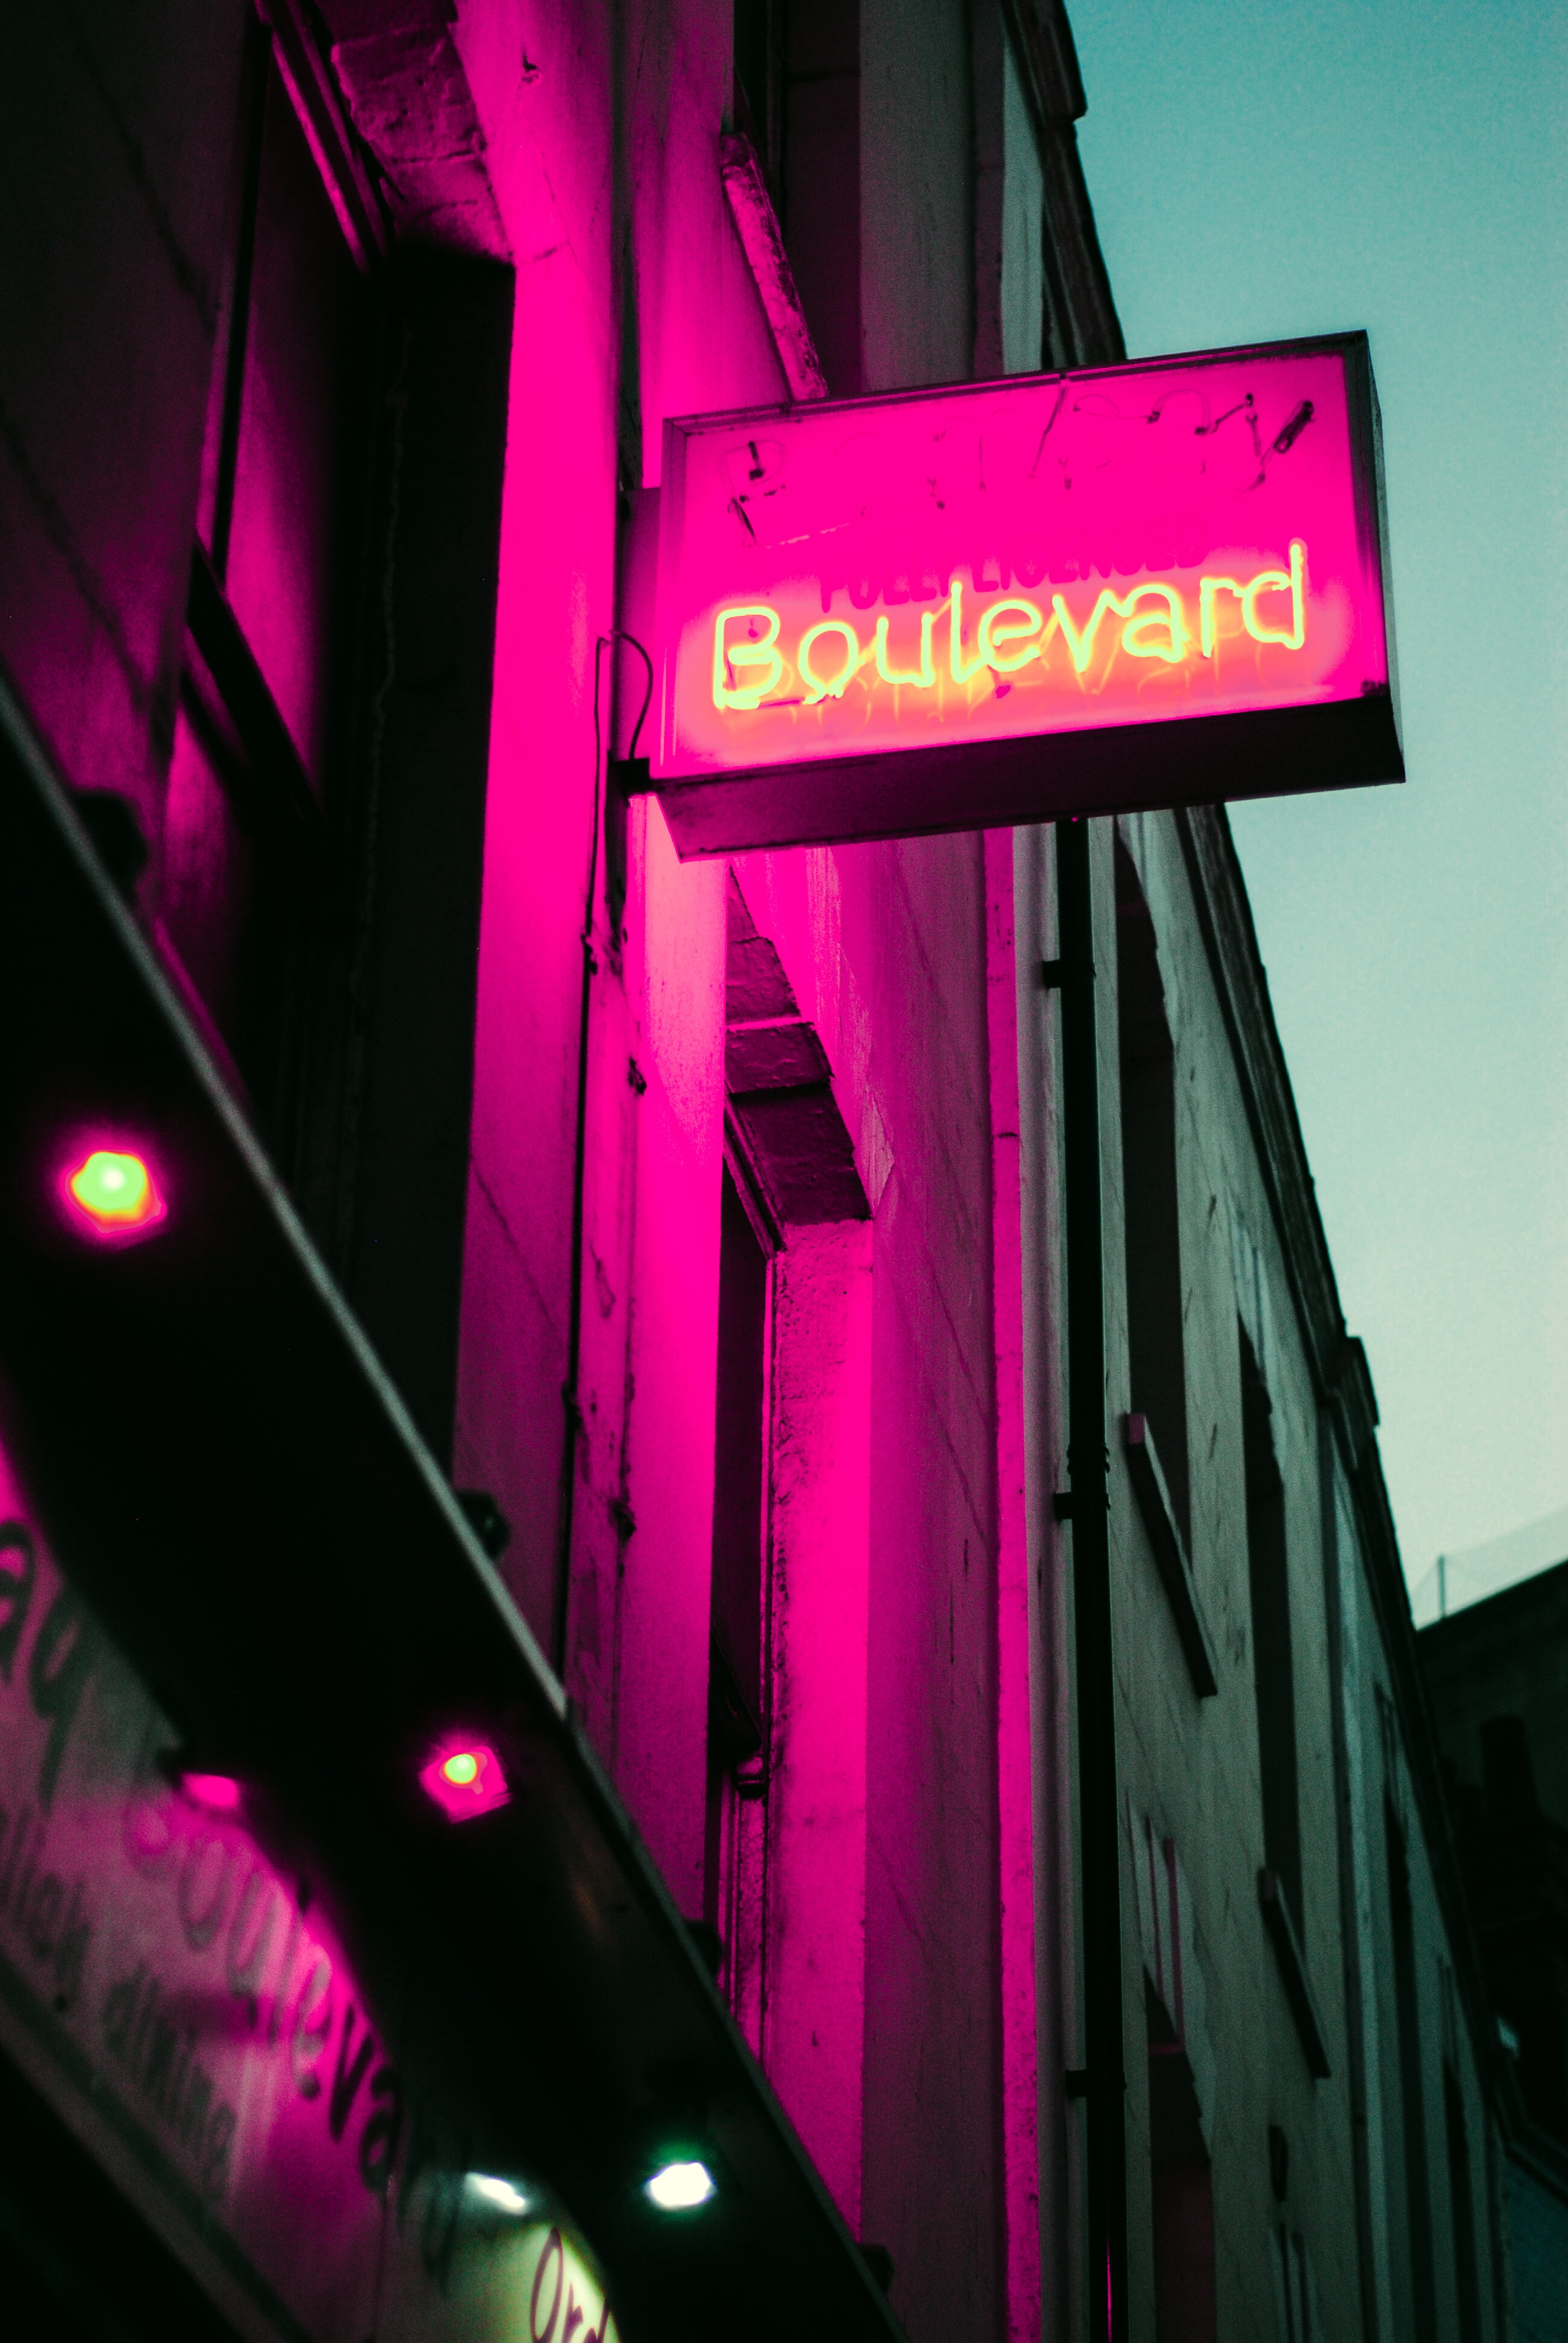 low angle photo of building with boulevard LED signage at night